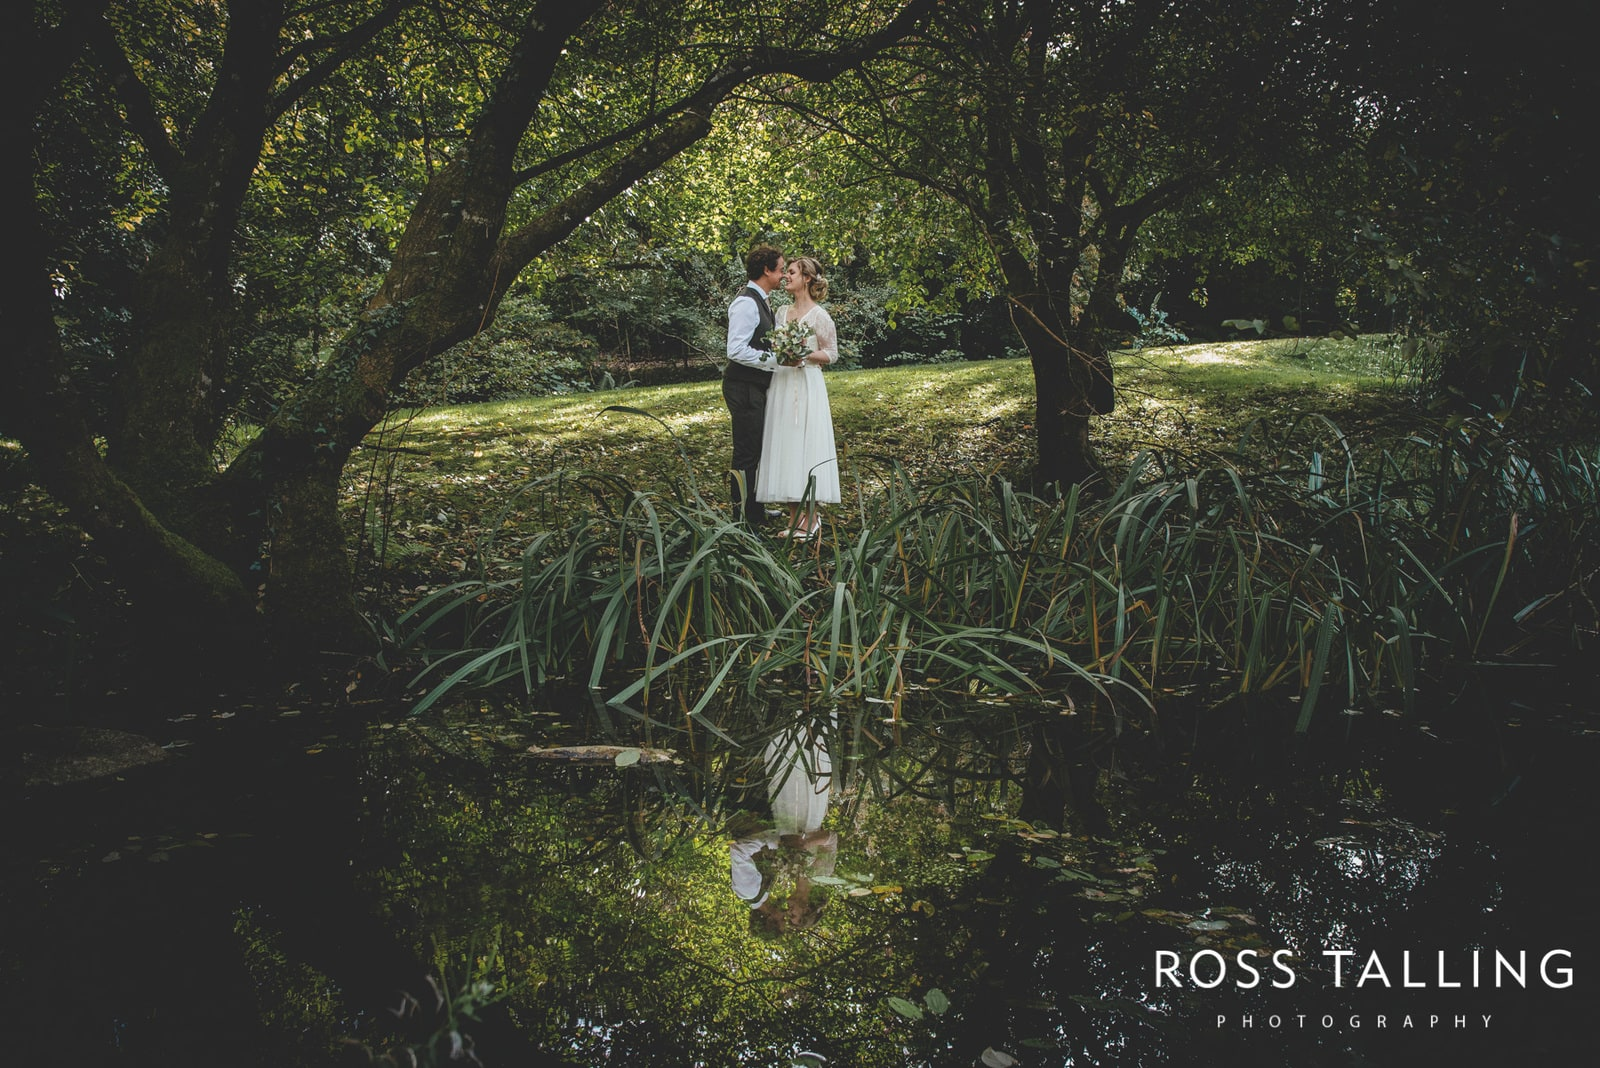 Taster :: Rachel & Tom's Wedding Photography at The Green Cornwall